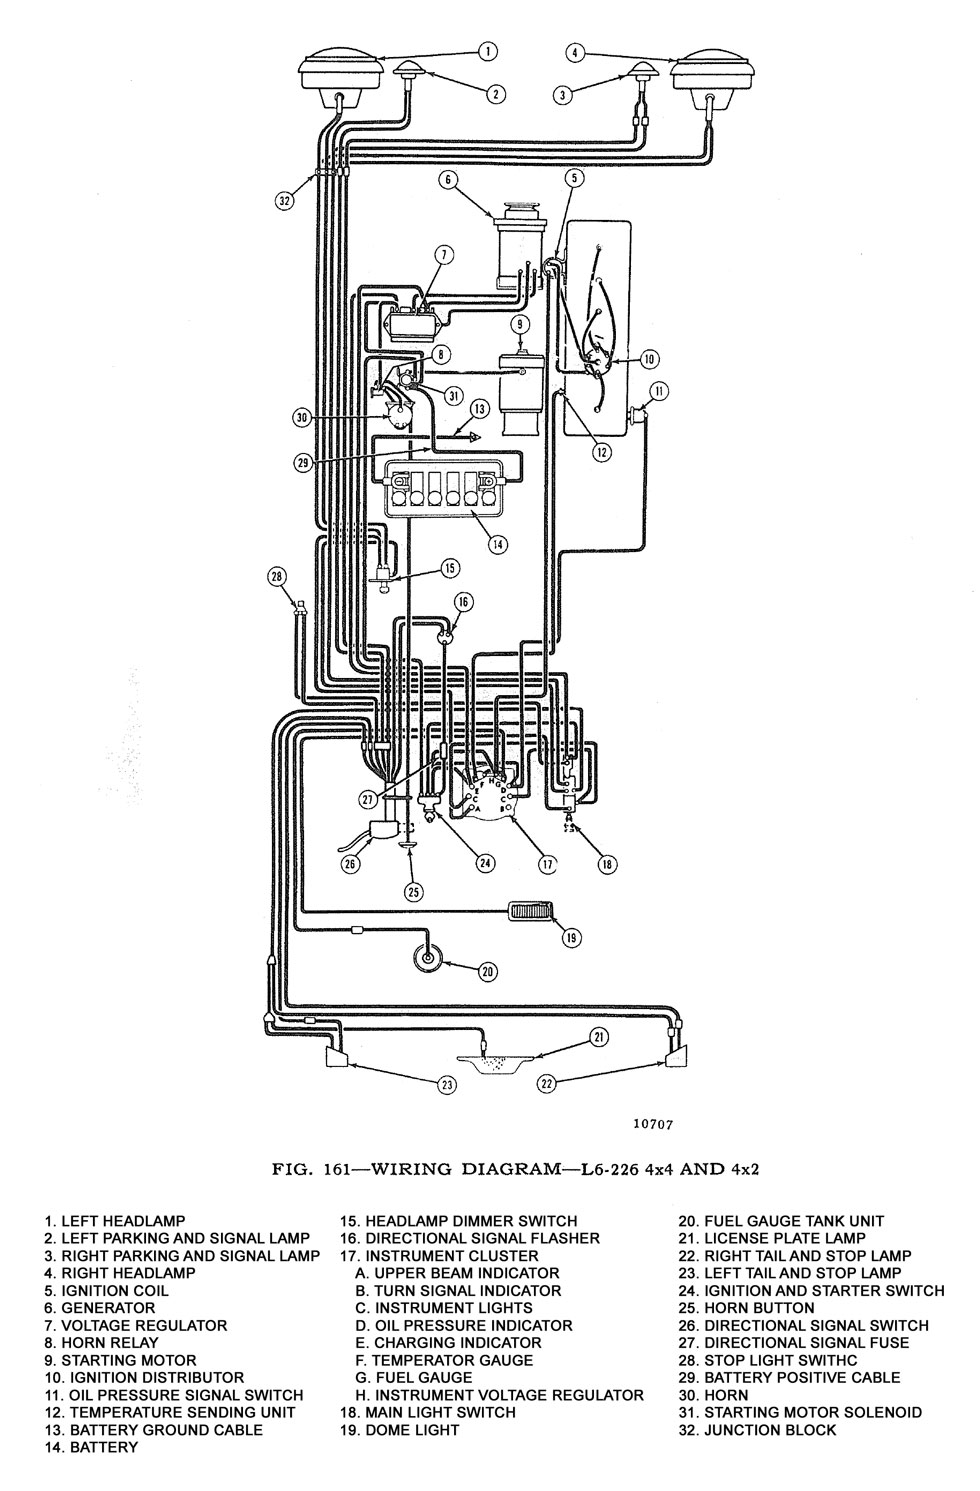 hight resolution of wiring diagram l6 226 4x4 and 4x2